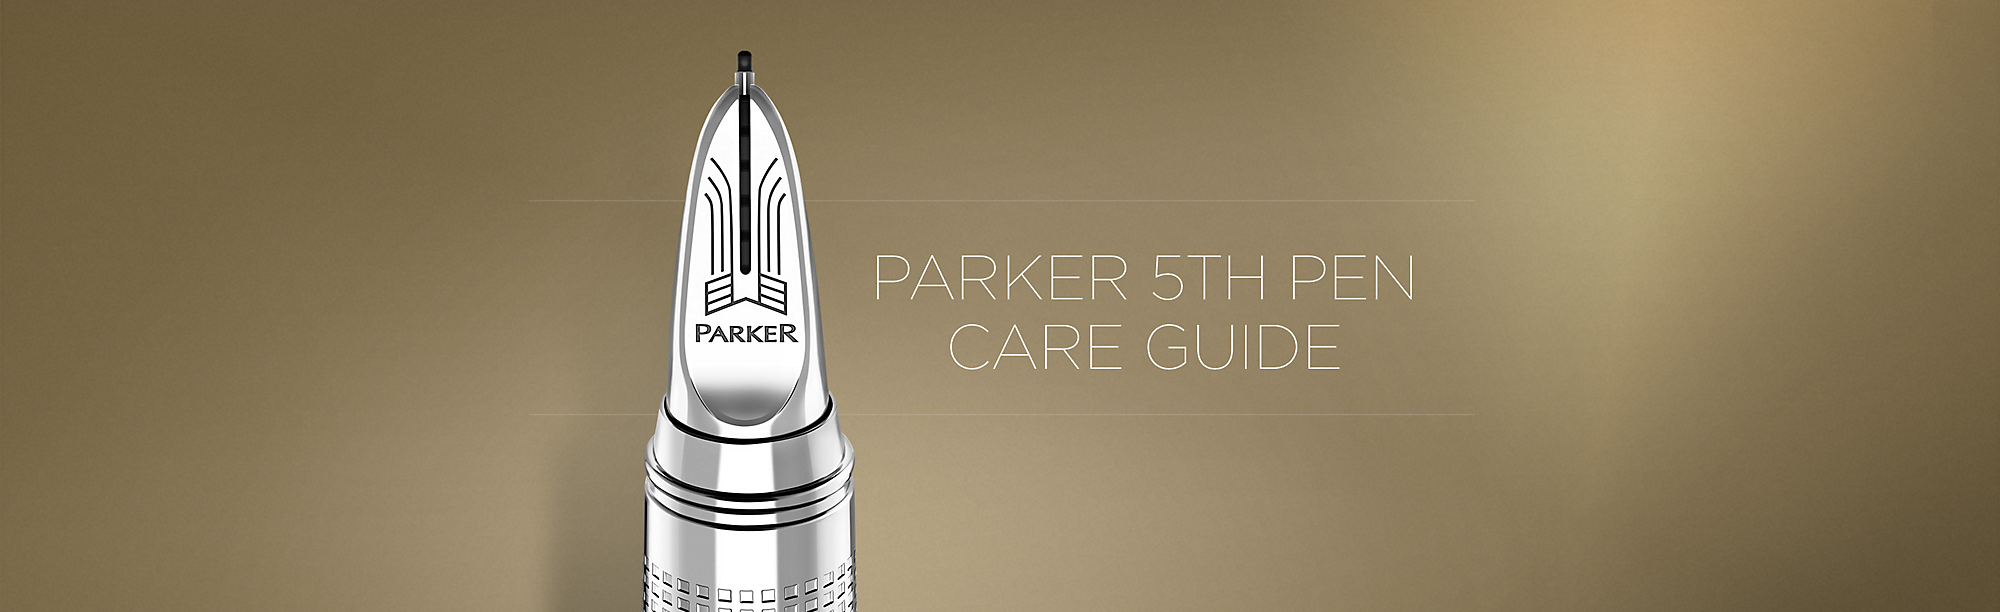 Parker 5th Pen Care Guide